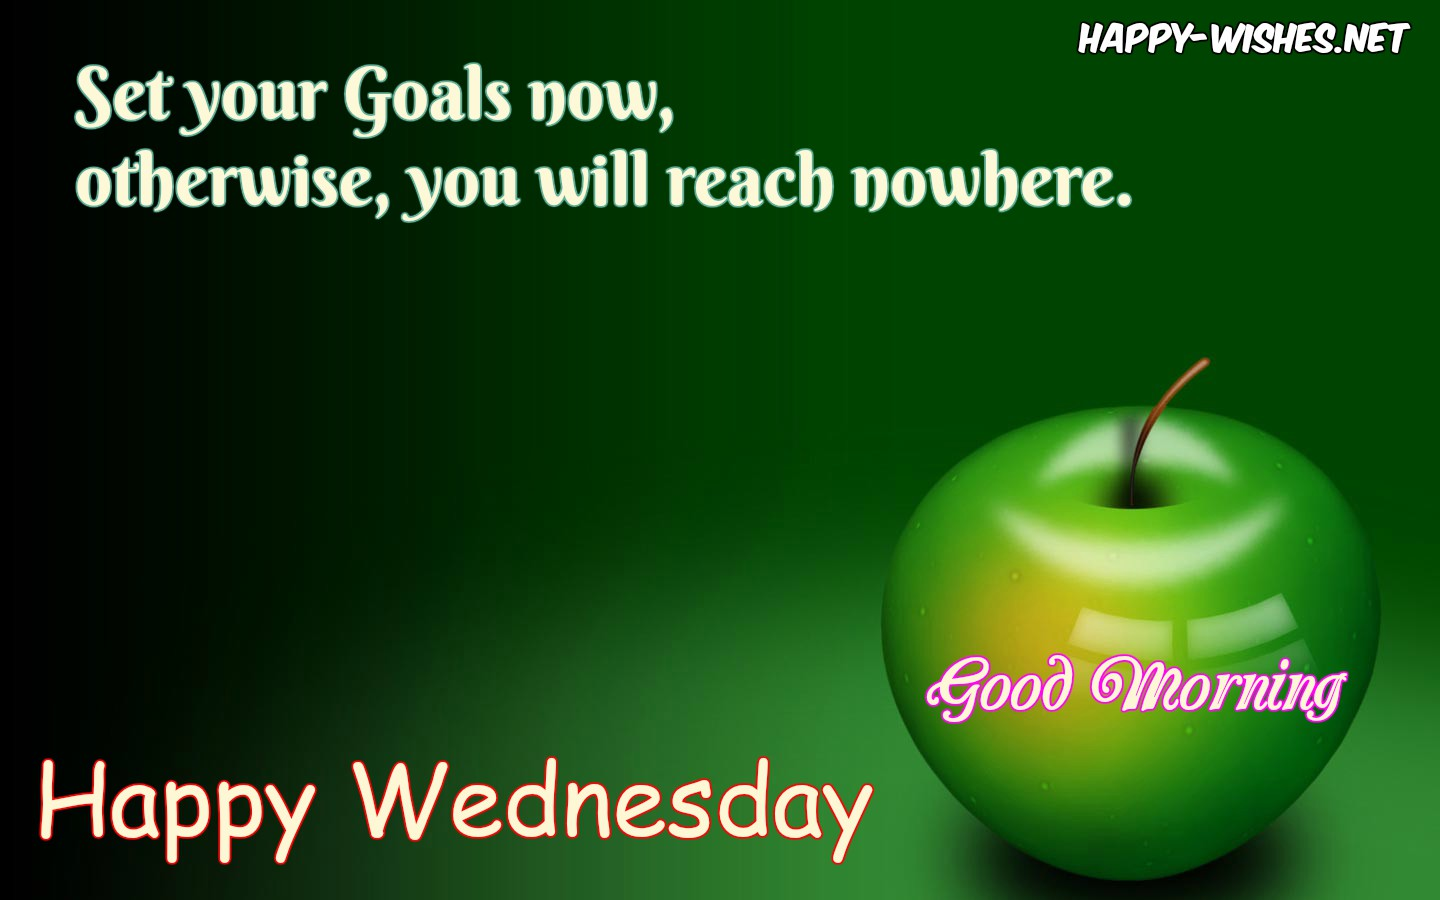 Good Morning Wishes On Wednesday Quotes Images And Pictures